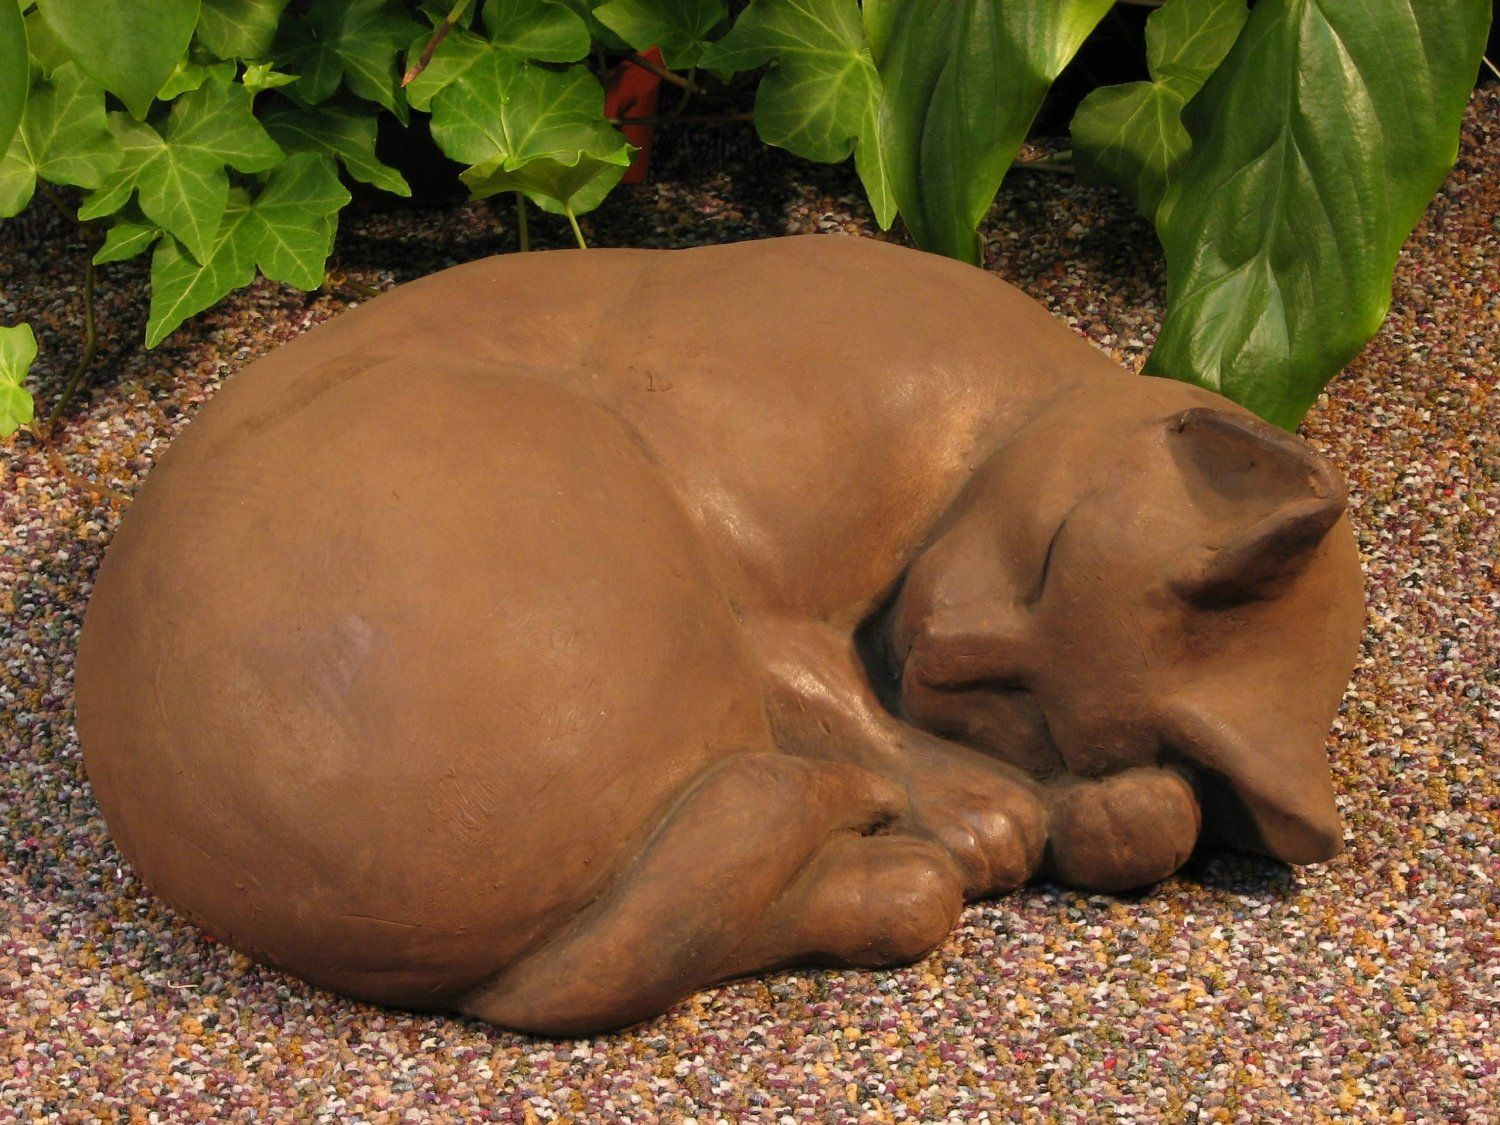 "Amazon.com : CAT Sleeping STATUE 11"" Kitten Sculpture DARK BROWN STAIN Cast CEMENT GARDEN Outdoor Decor : Patio, Lawn & Garden"